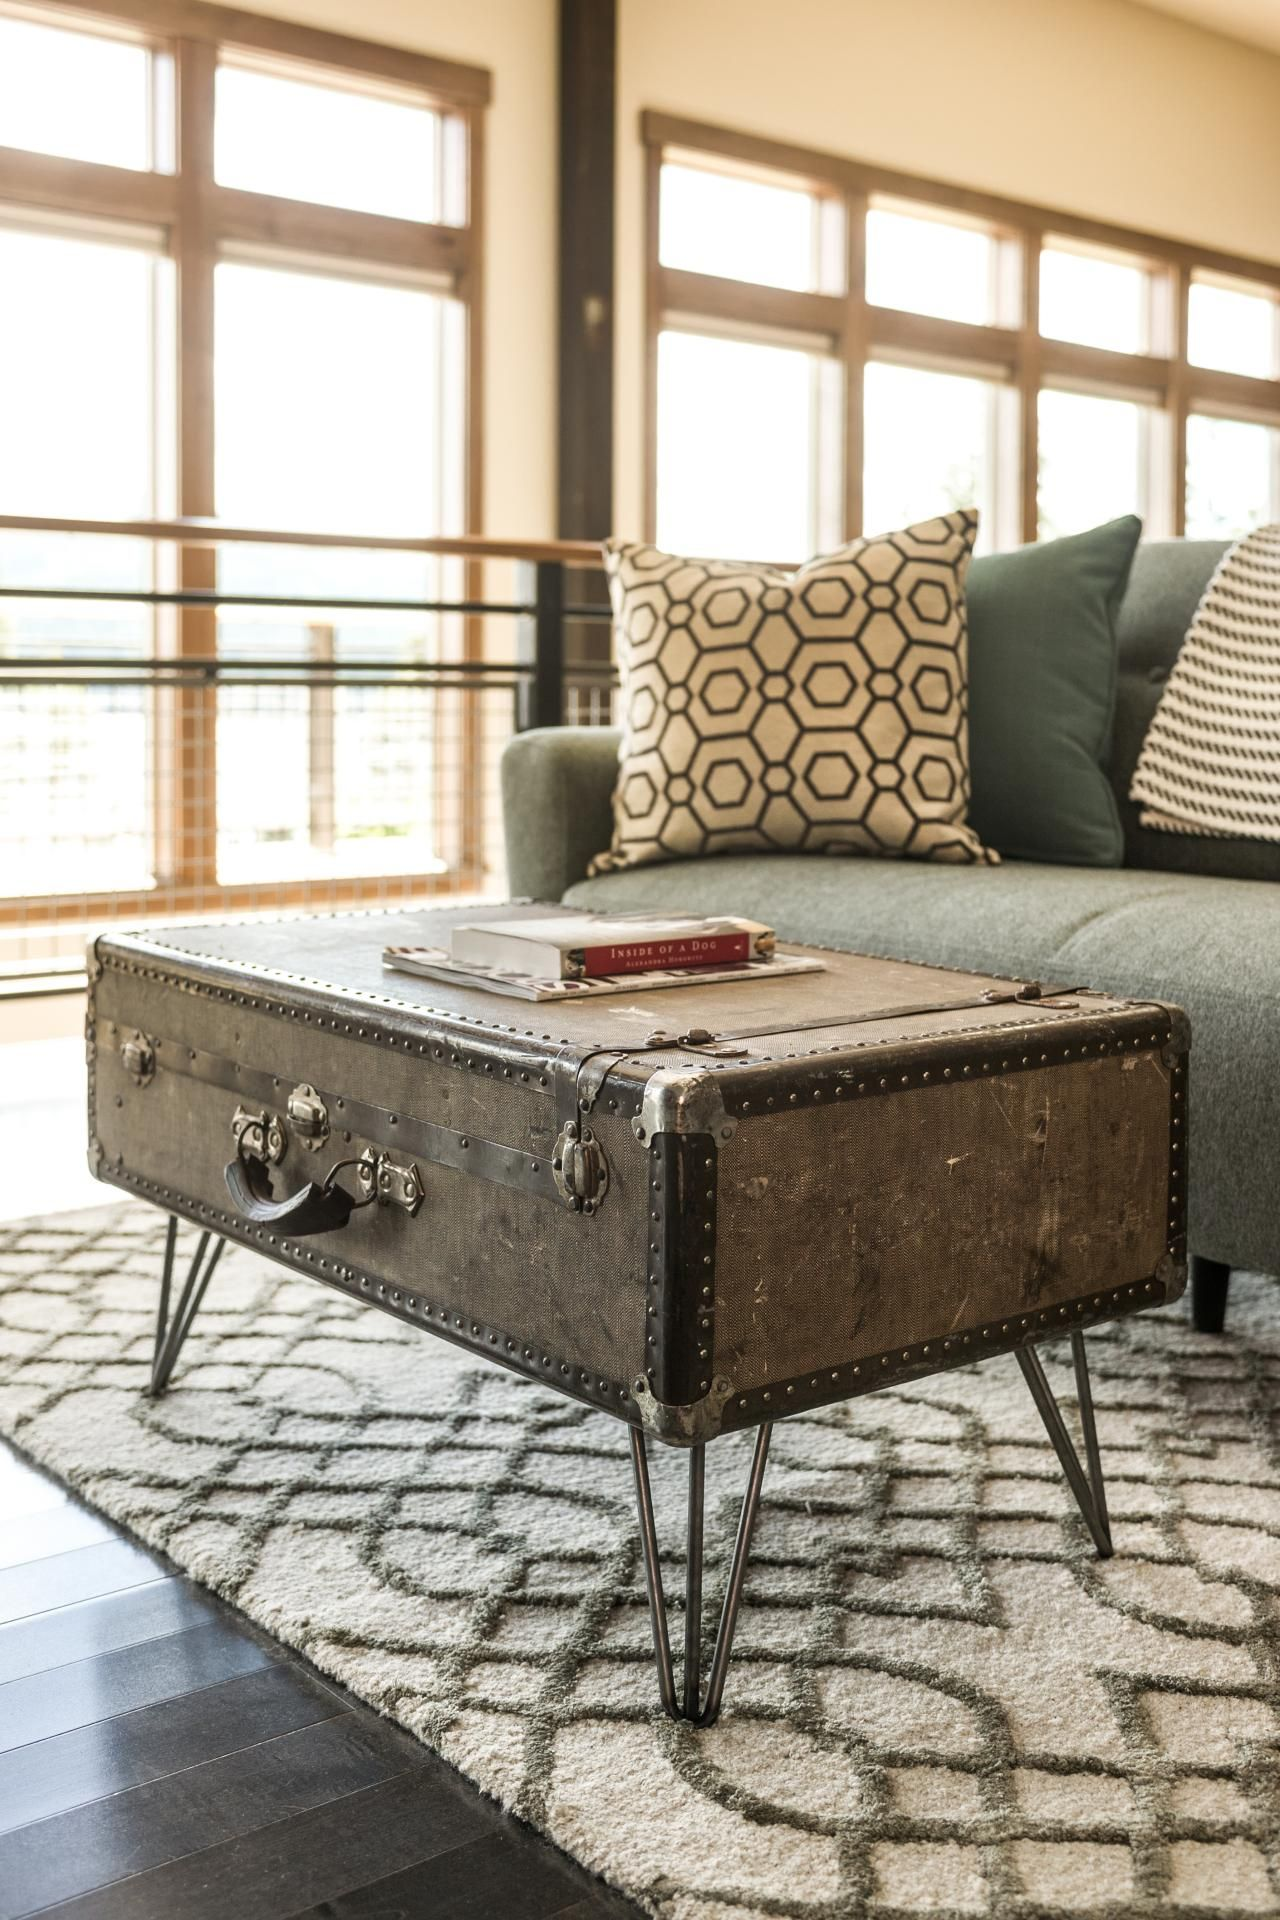 - How To Make A Suitcase Coffee Table Upcycled Furniture, Vintage